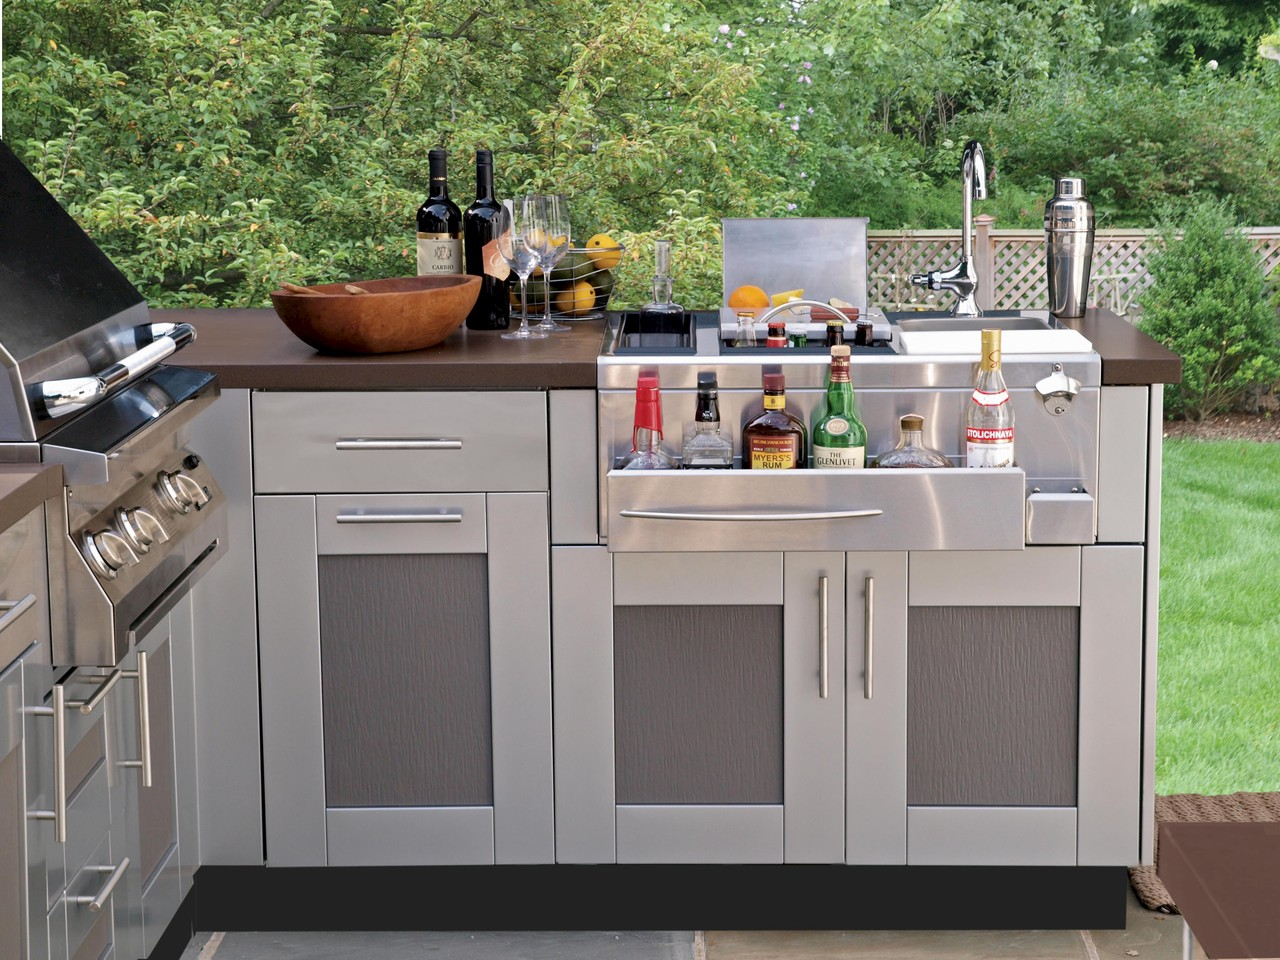 Bringing the Inside Out: Outdoor Kitchen Cabinetry - 6 week ...